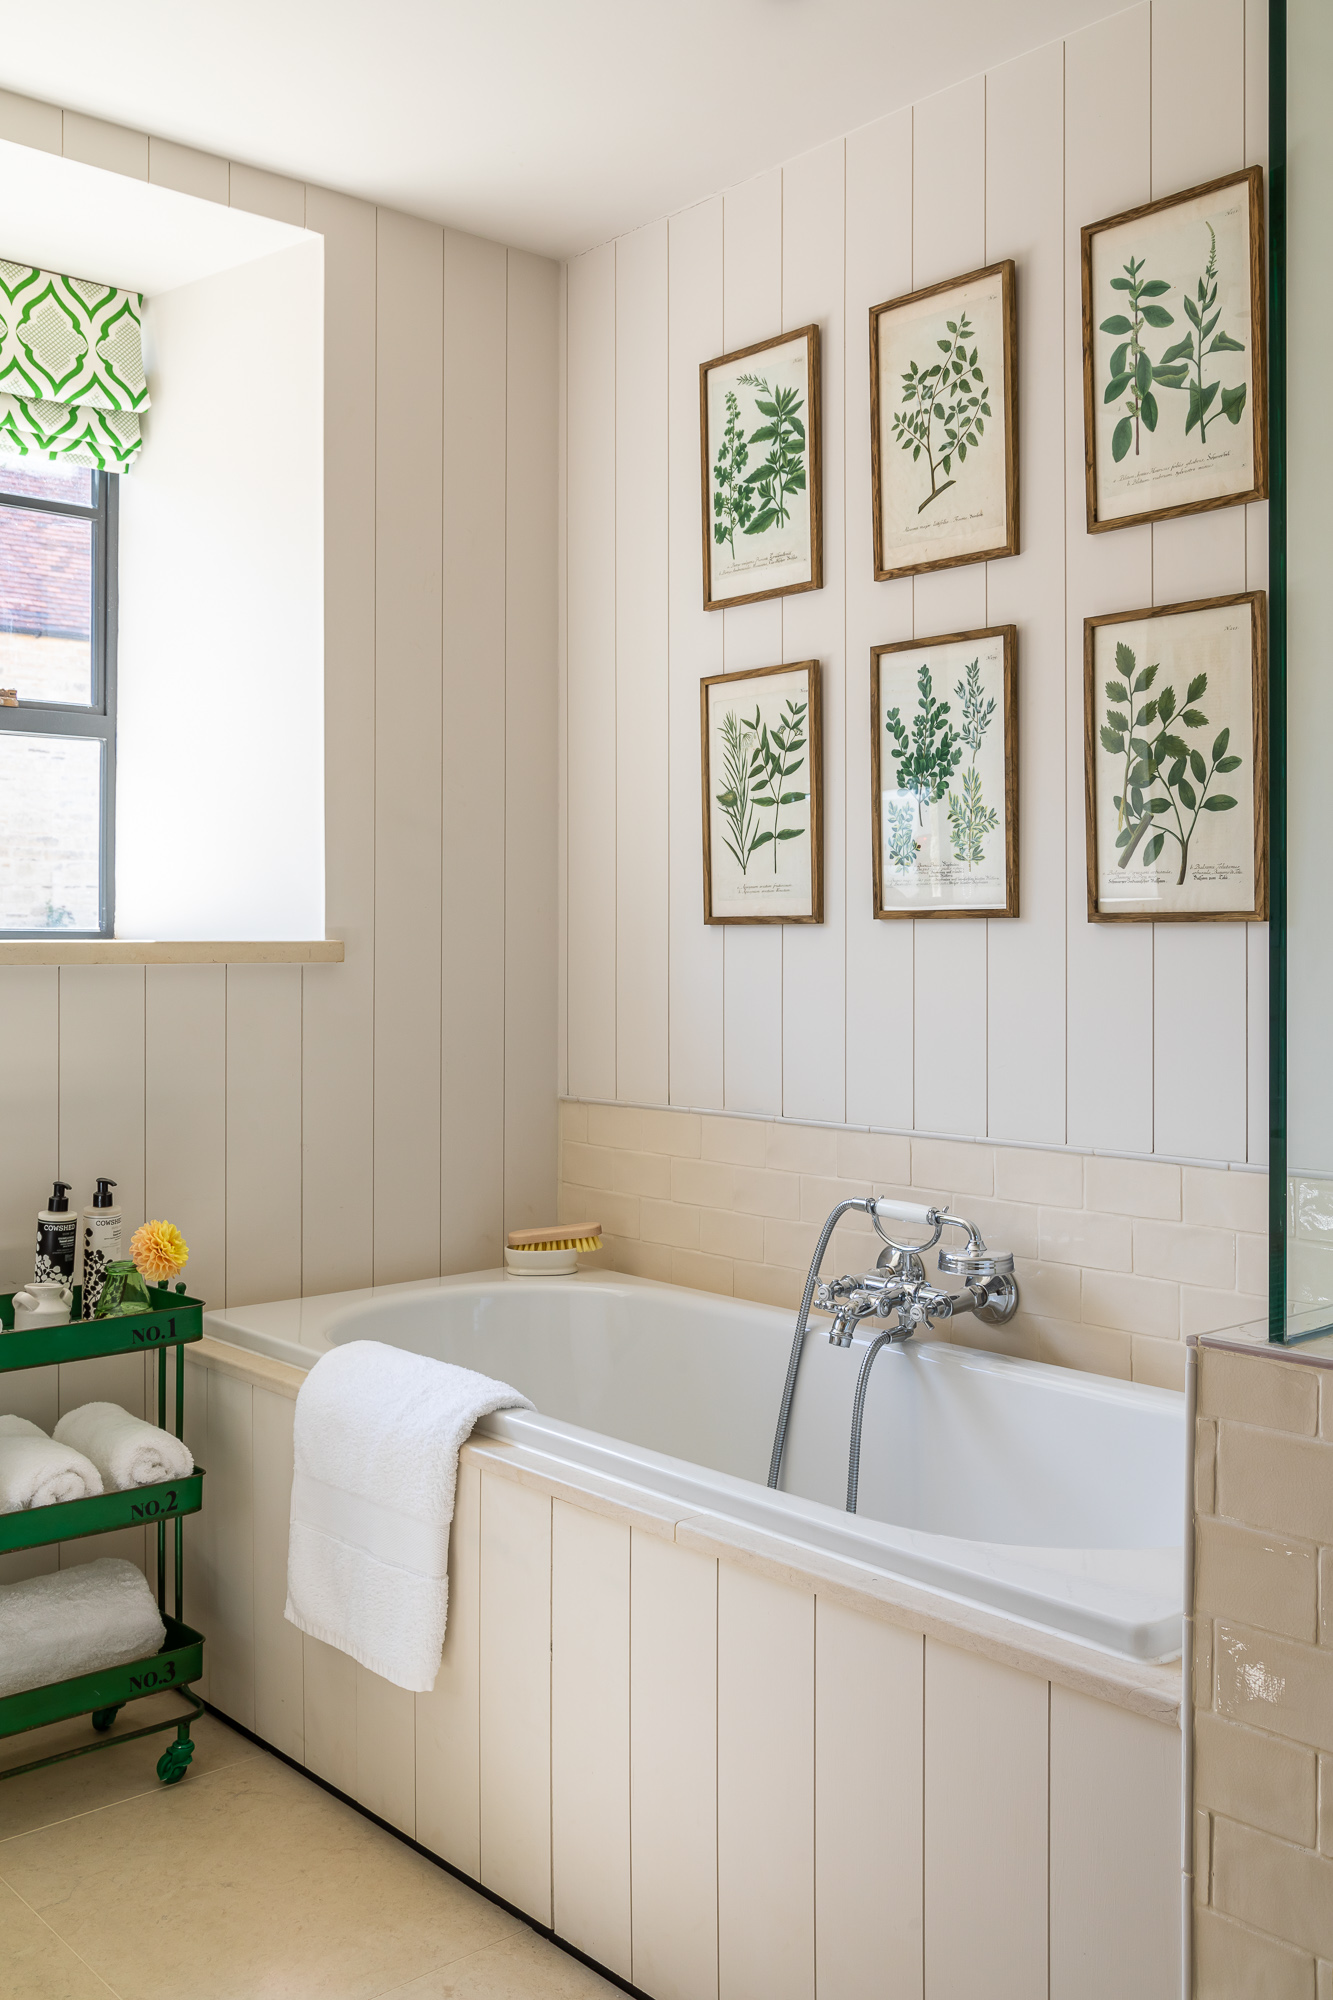 jonathan bond, interior photographer, bathroom bath marnhull